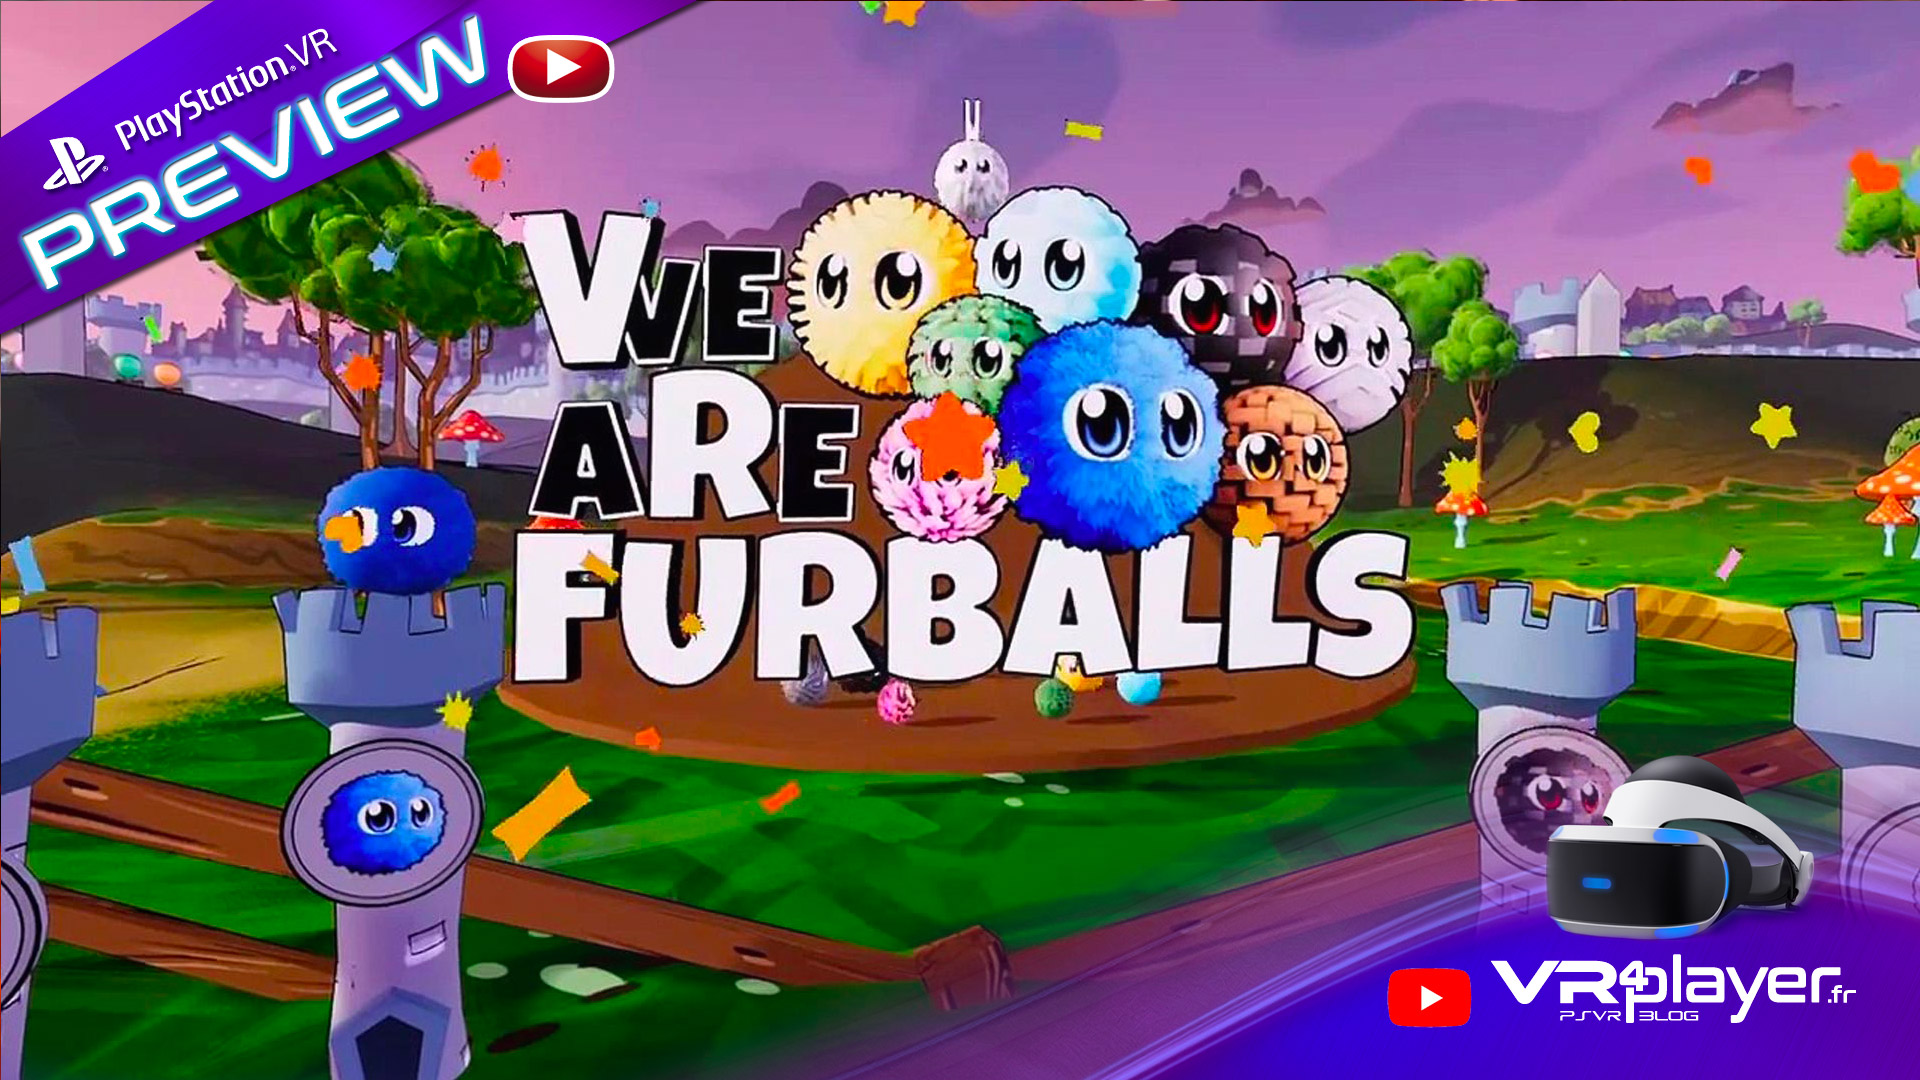 VR Furballs Demolition preview VR4player